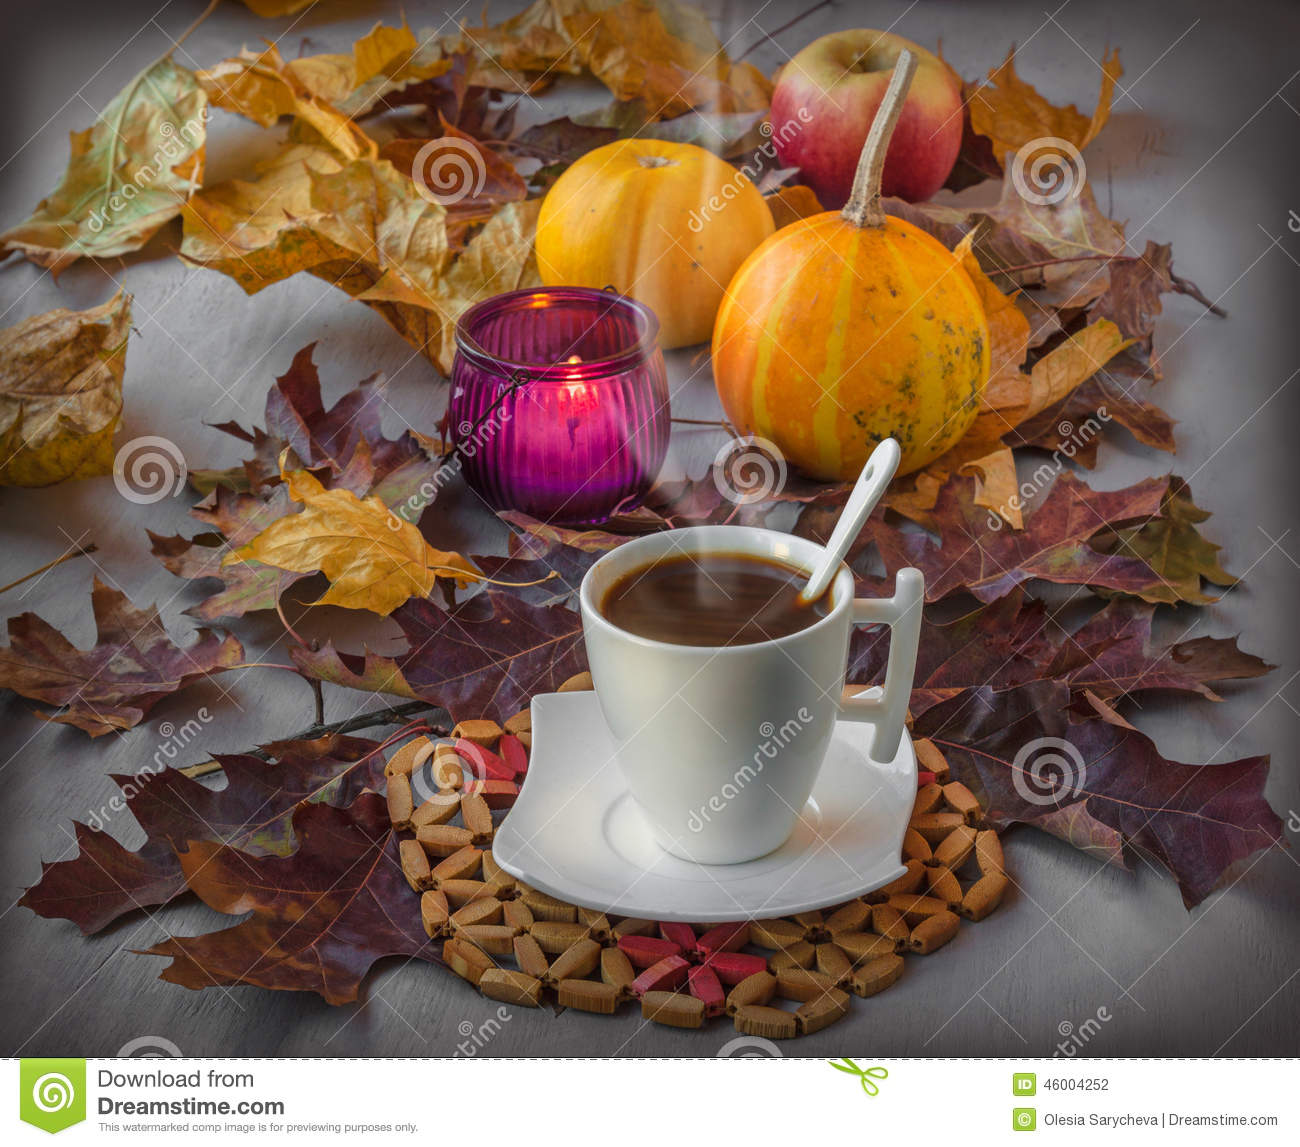 https://thumbs.dreamstime.com/z/tasse-de-caf-halloween-46004252.jpg